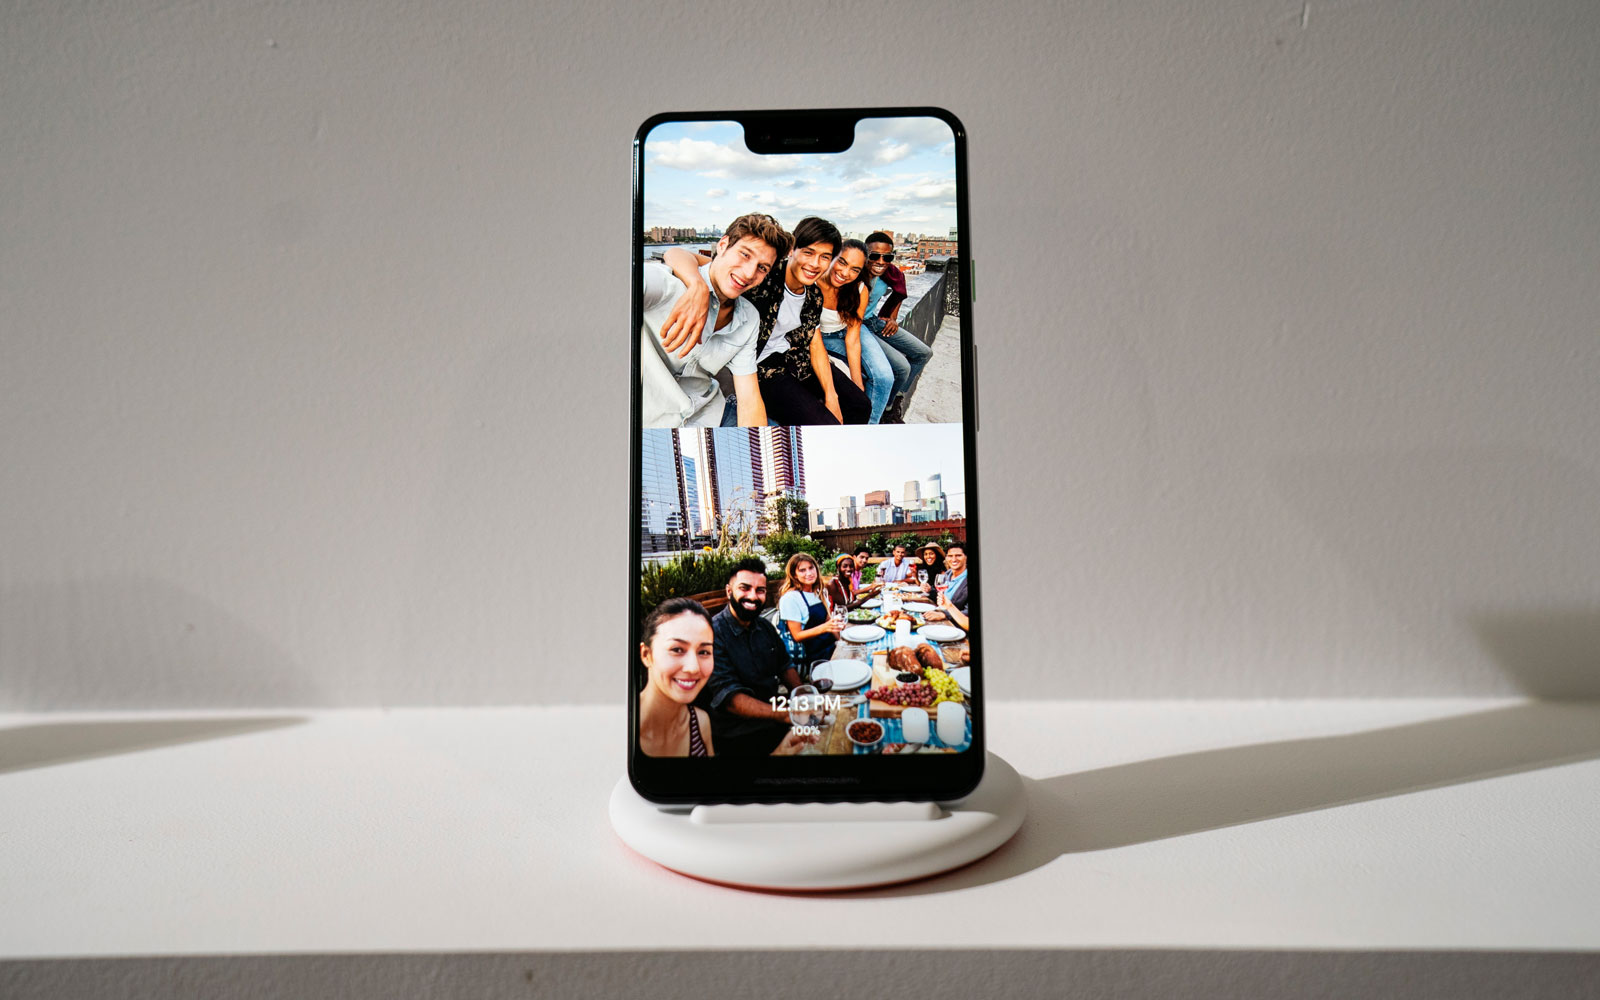 Google Pixel 3 Review: The Features Travelers Will Want